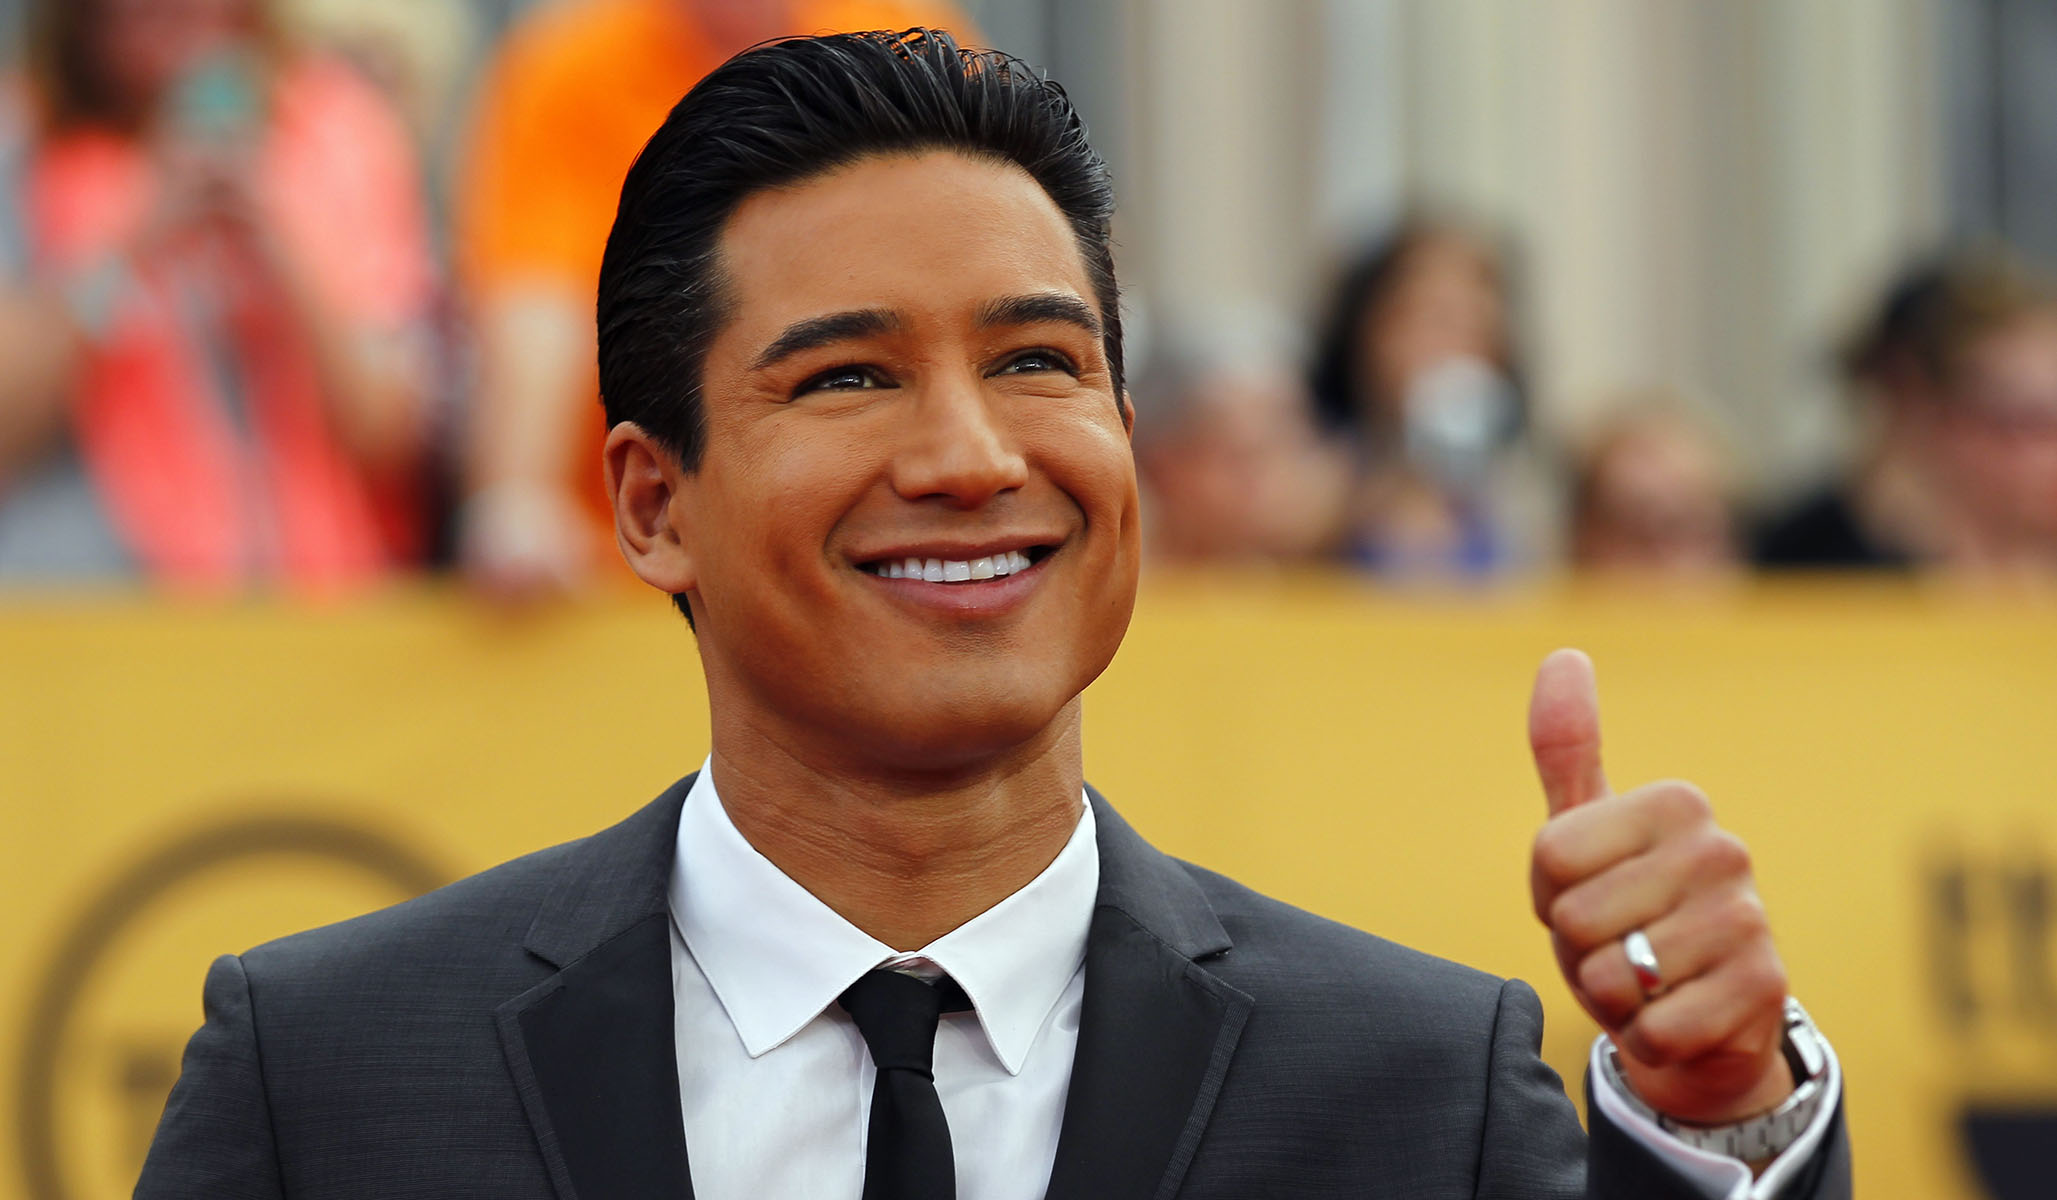 Mario Lopez S Transgender Kids Comments Score One For The